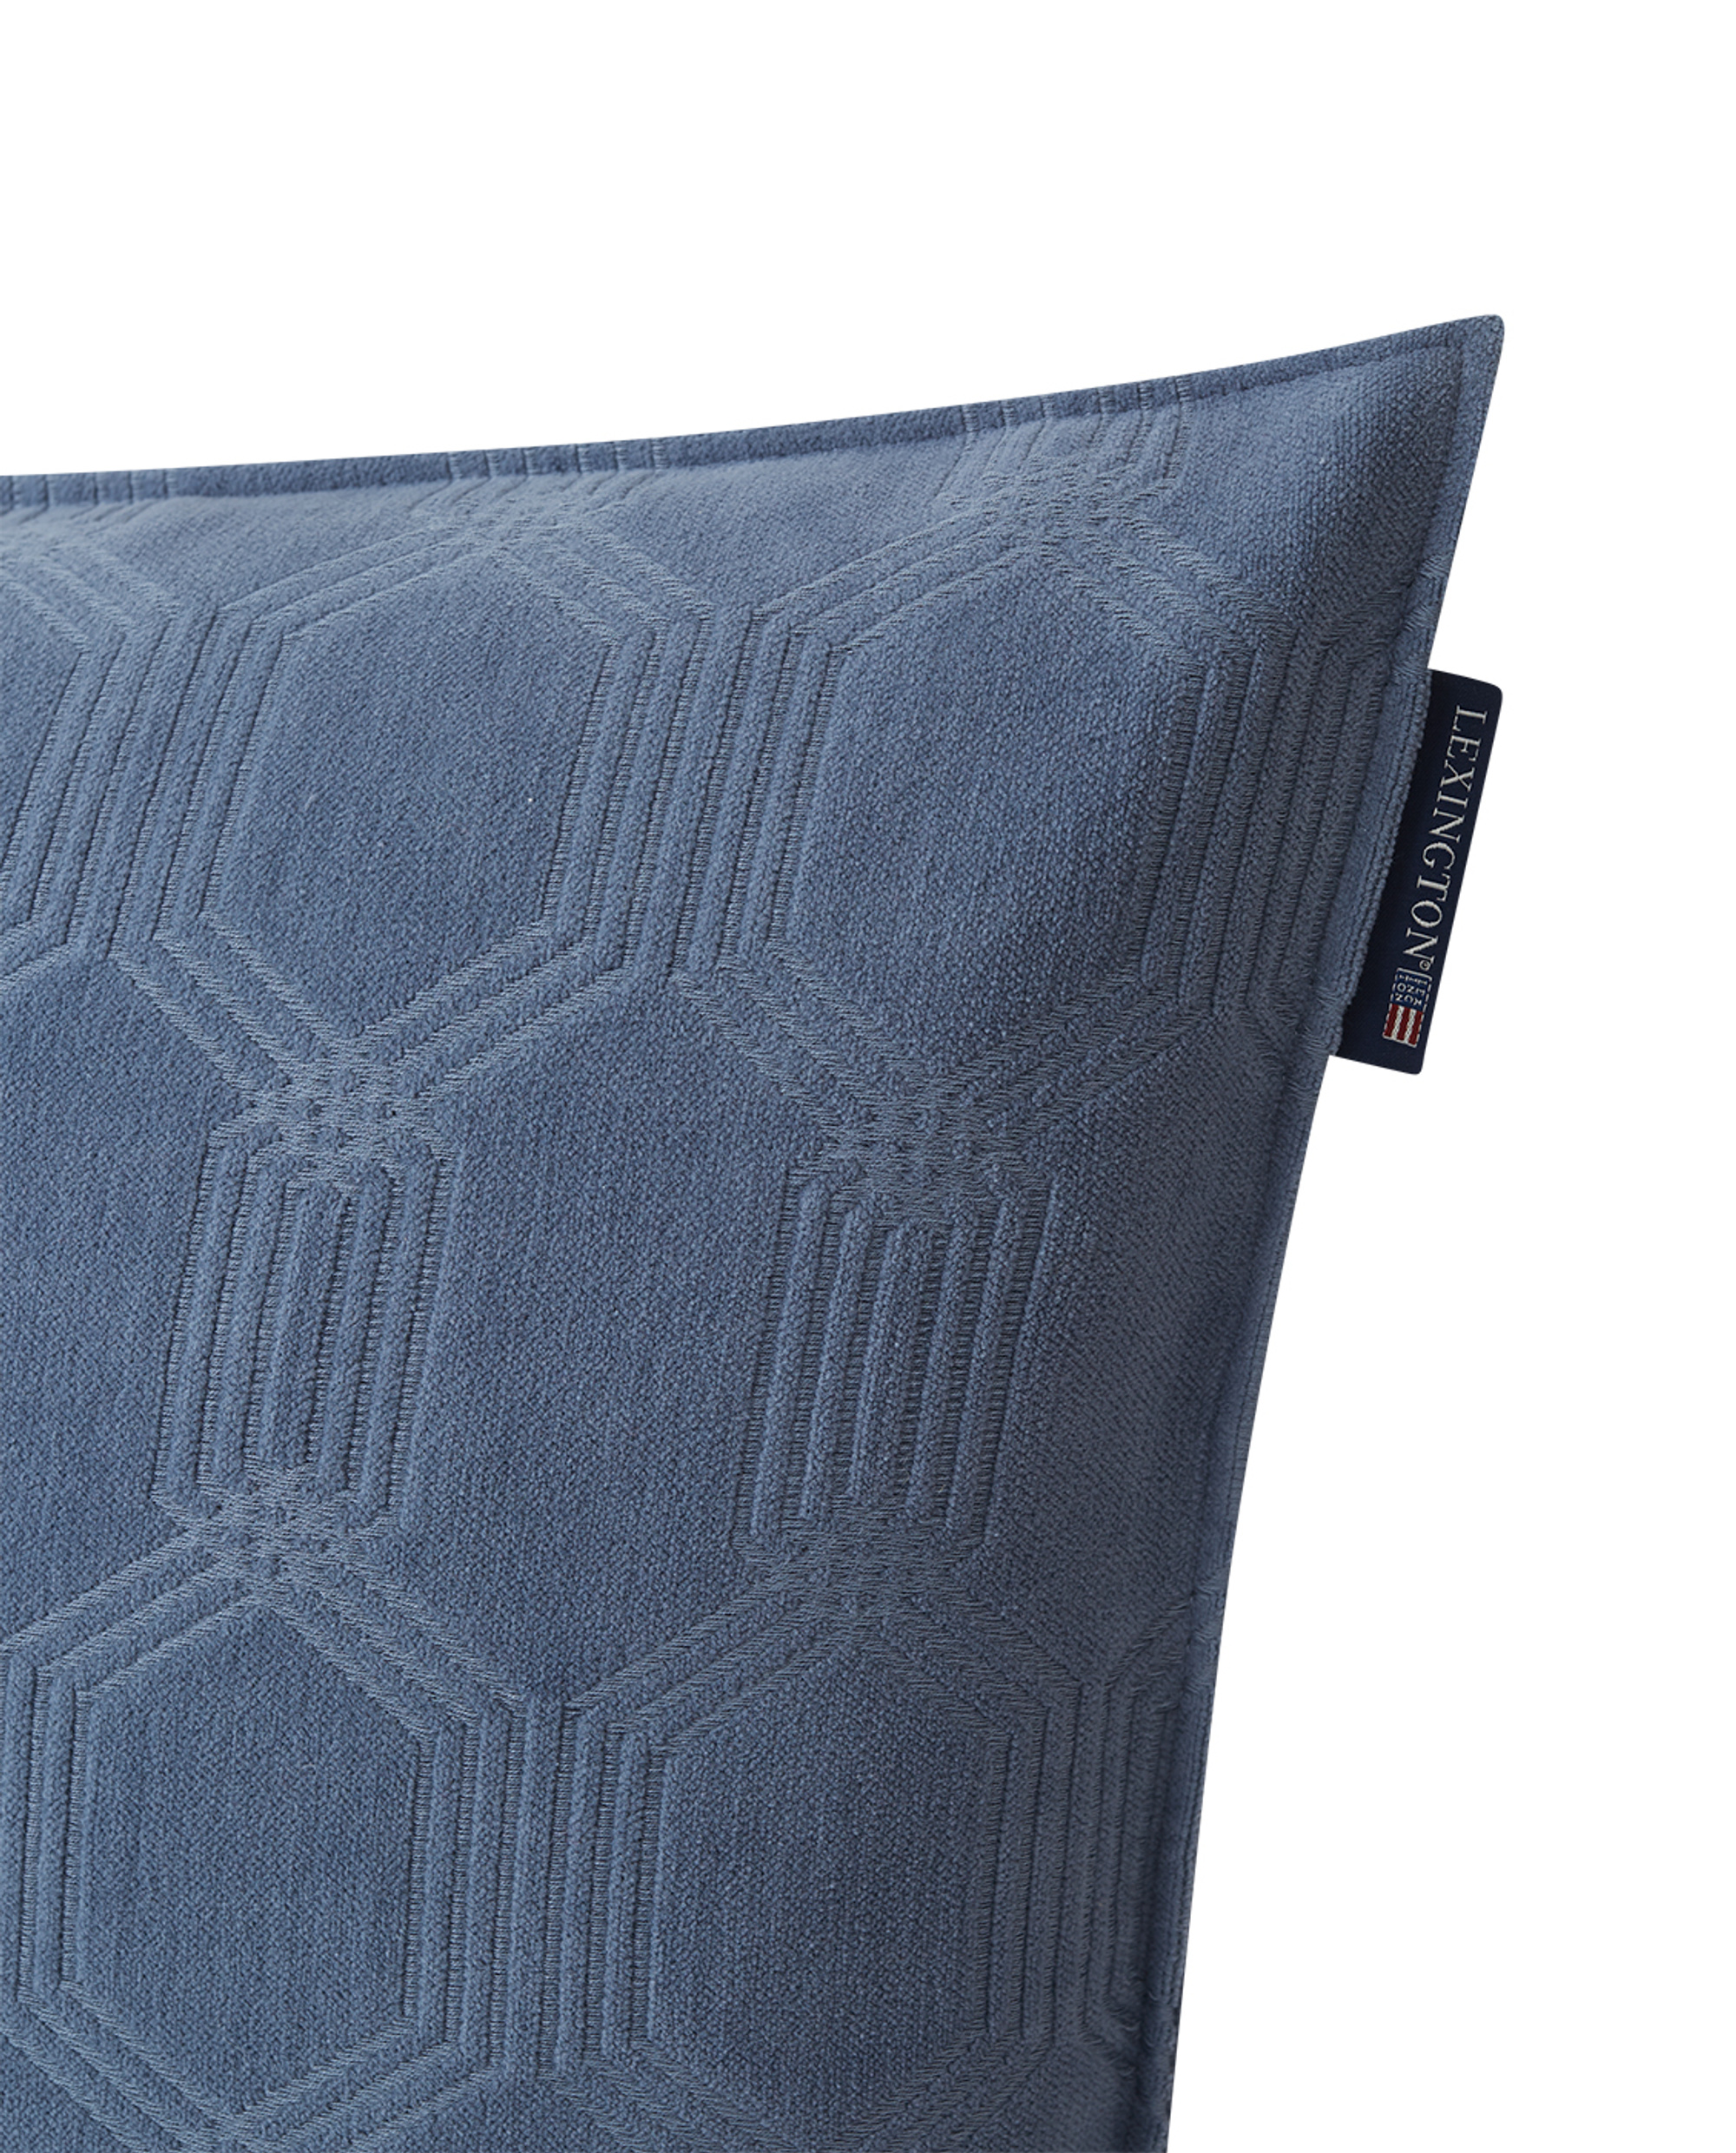 Jacquard Cotton Velvet Pillow Cover 50x50cm, Steel Blue